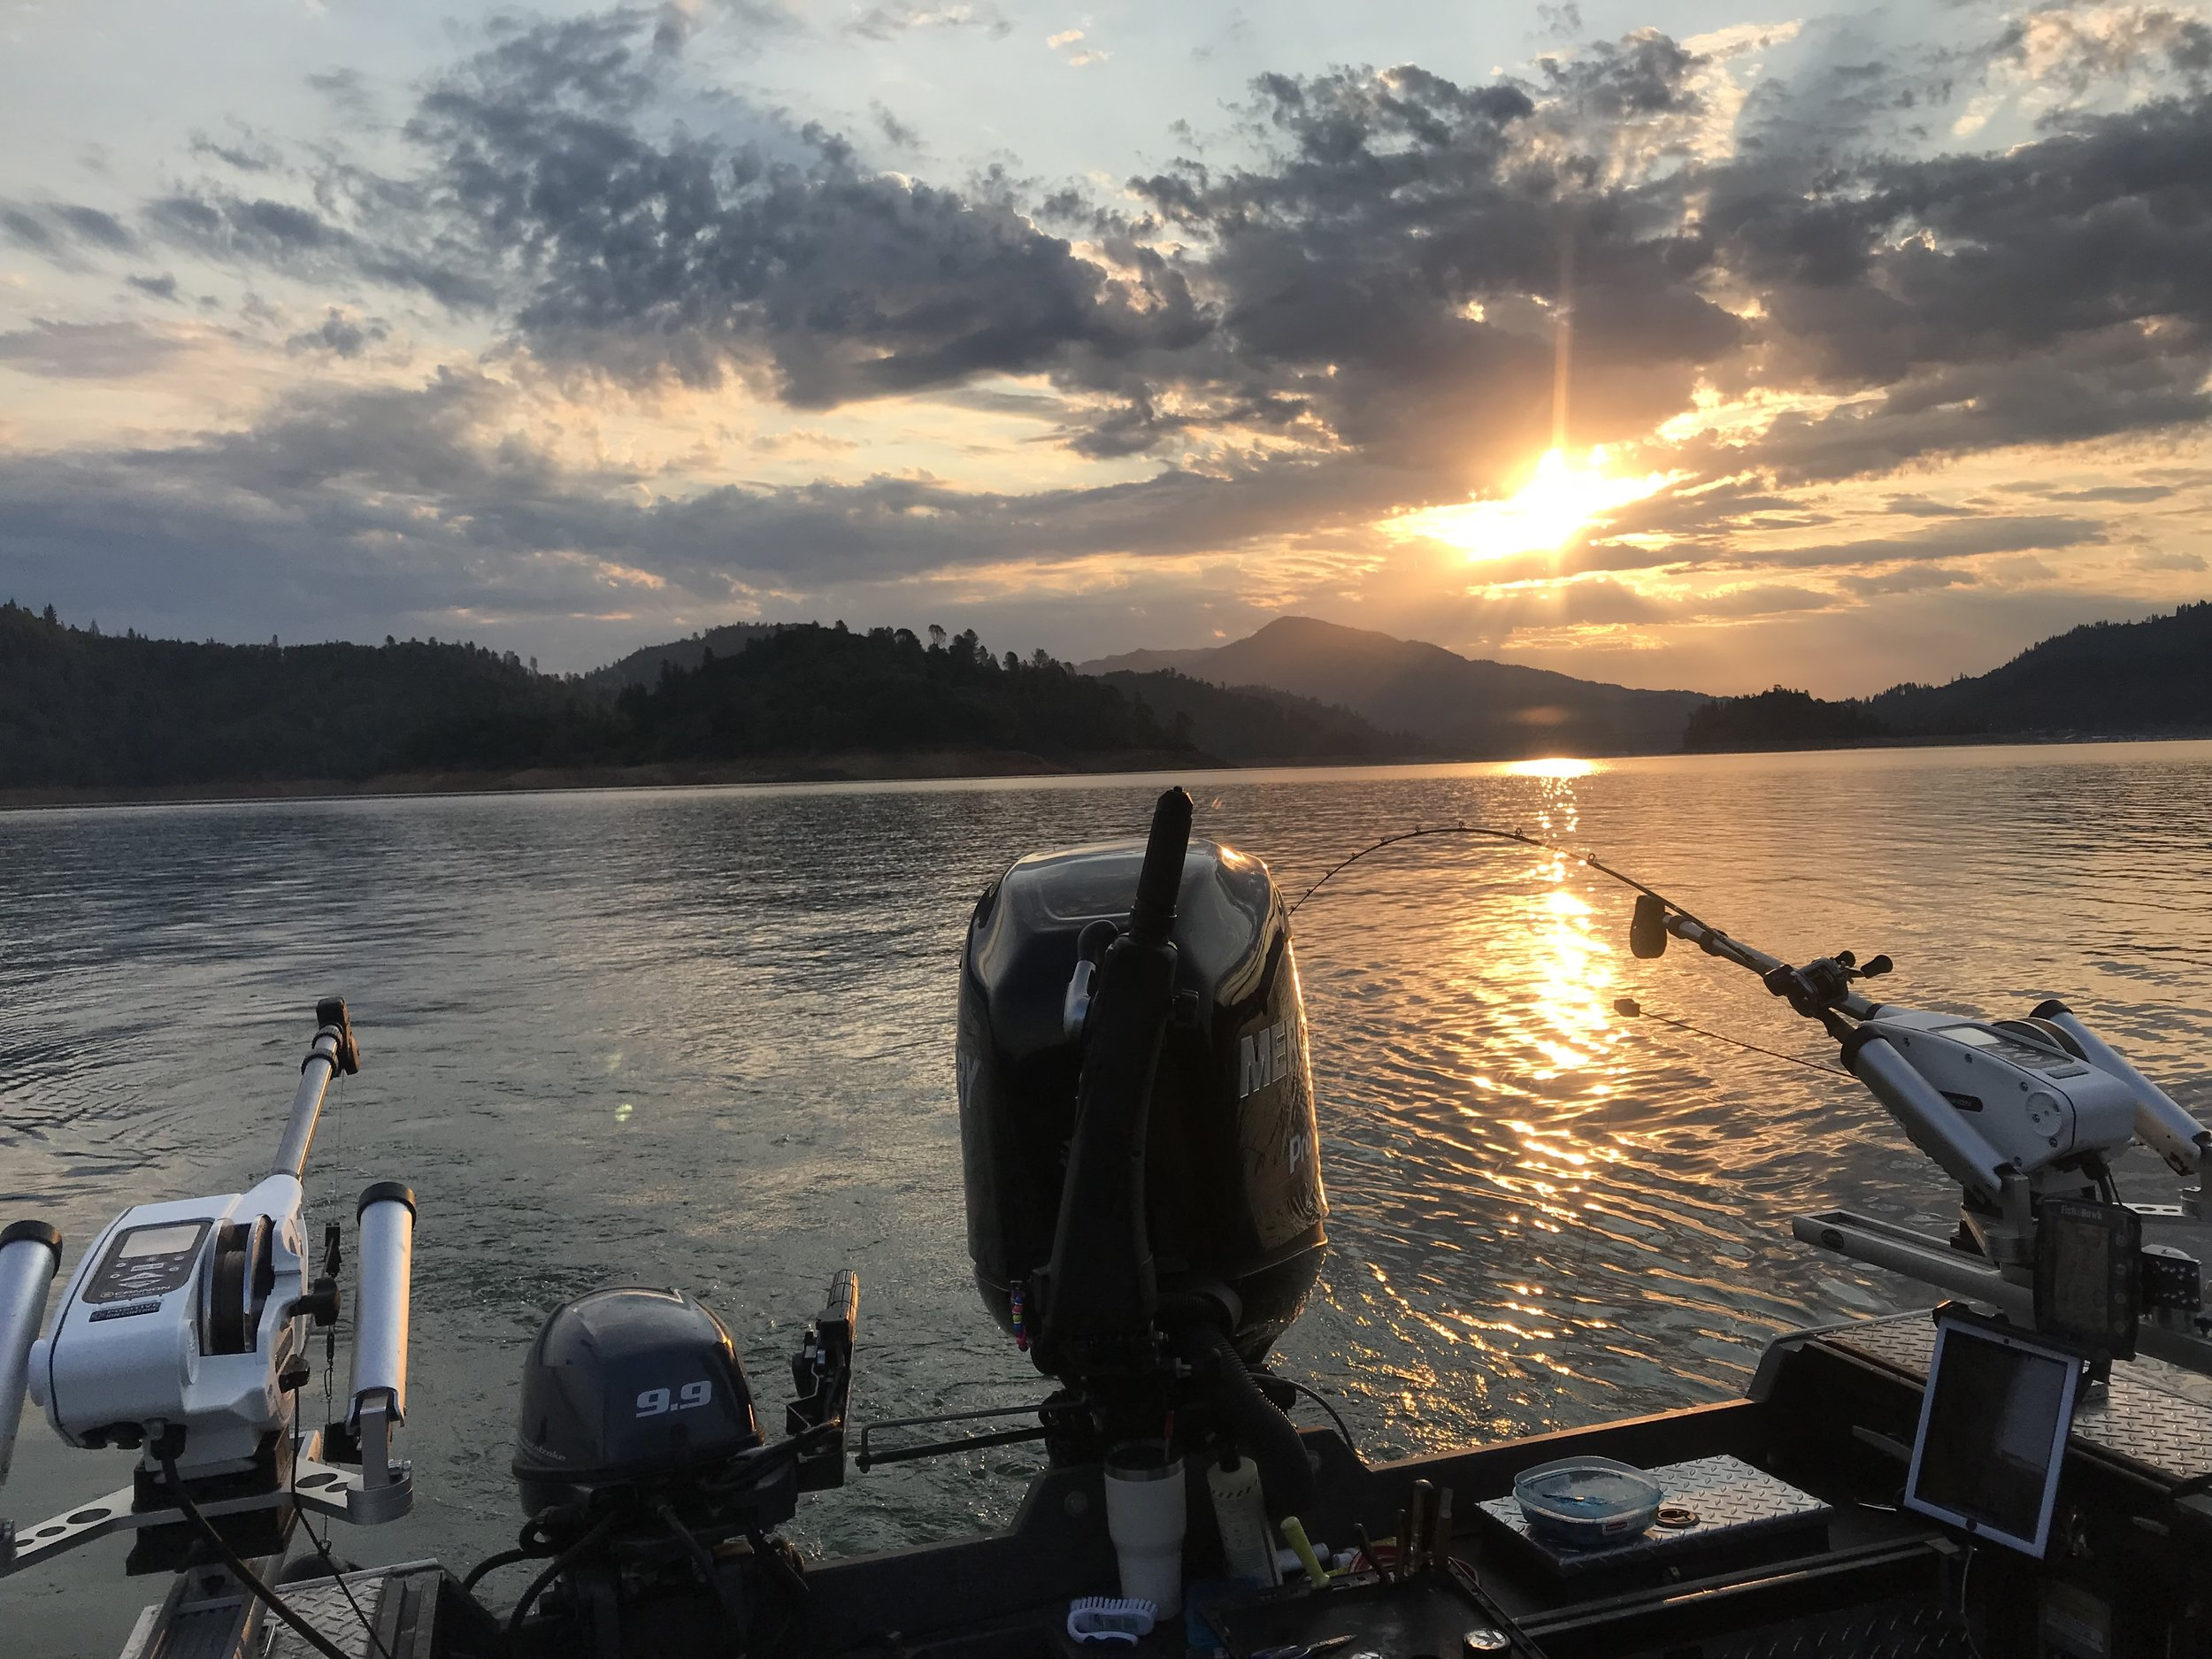 Sunrise on Shasta Lake is a magical time!